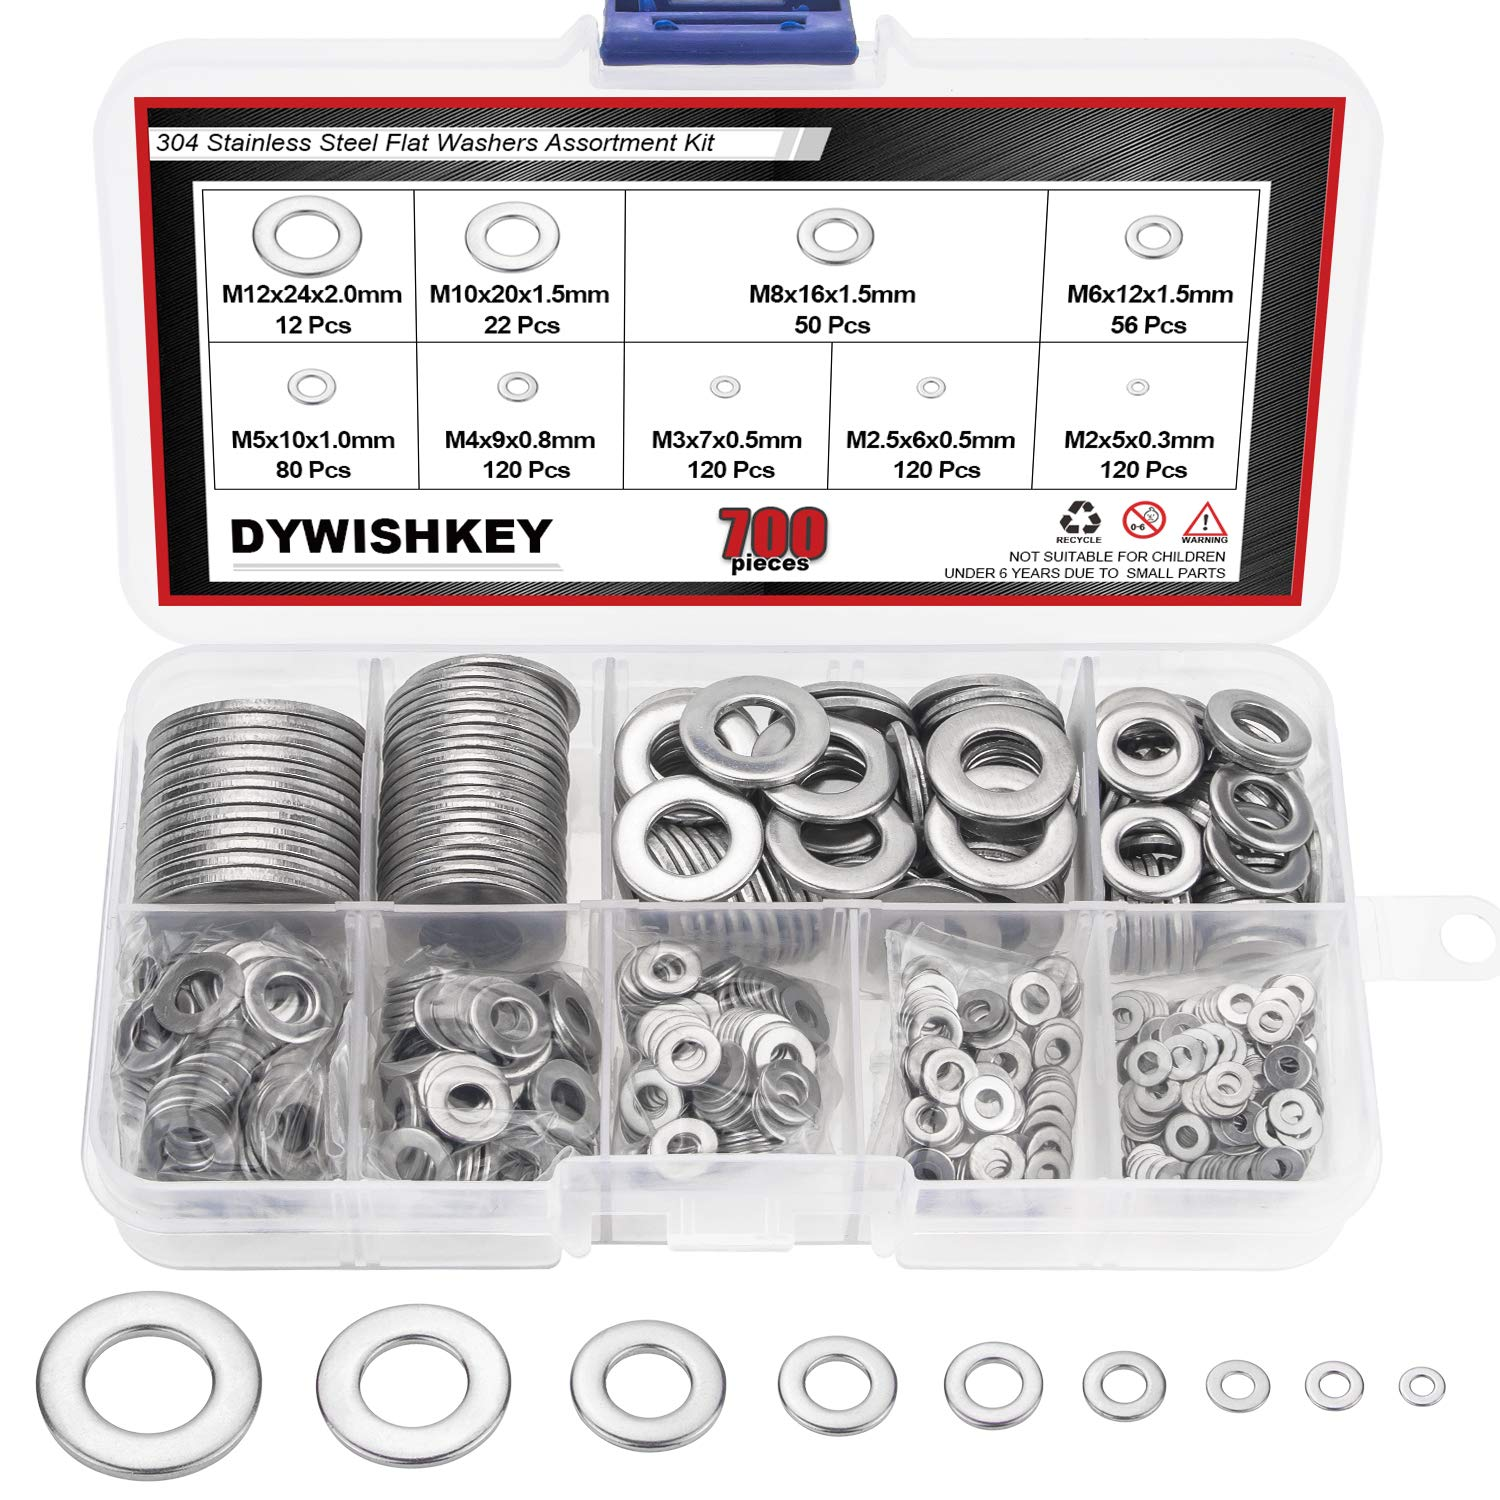 DYWISHKEY 700Pcs 9 Sizes Stainless Steel Flat Washers Assortment Kit (M2 M2.5 M3 M4 M5 M6 M8 M10 M12)